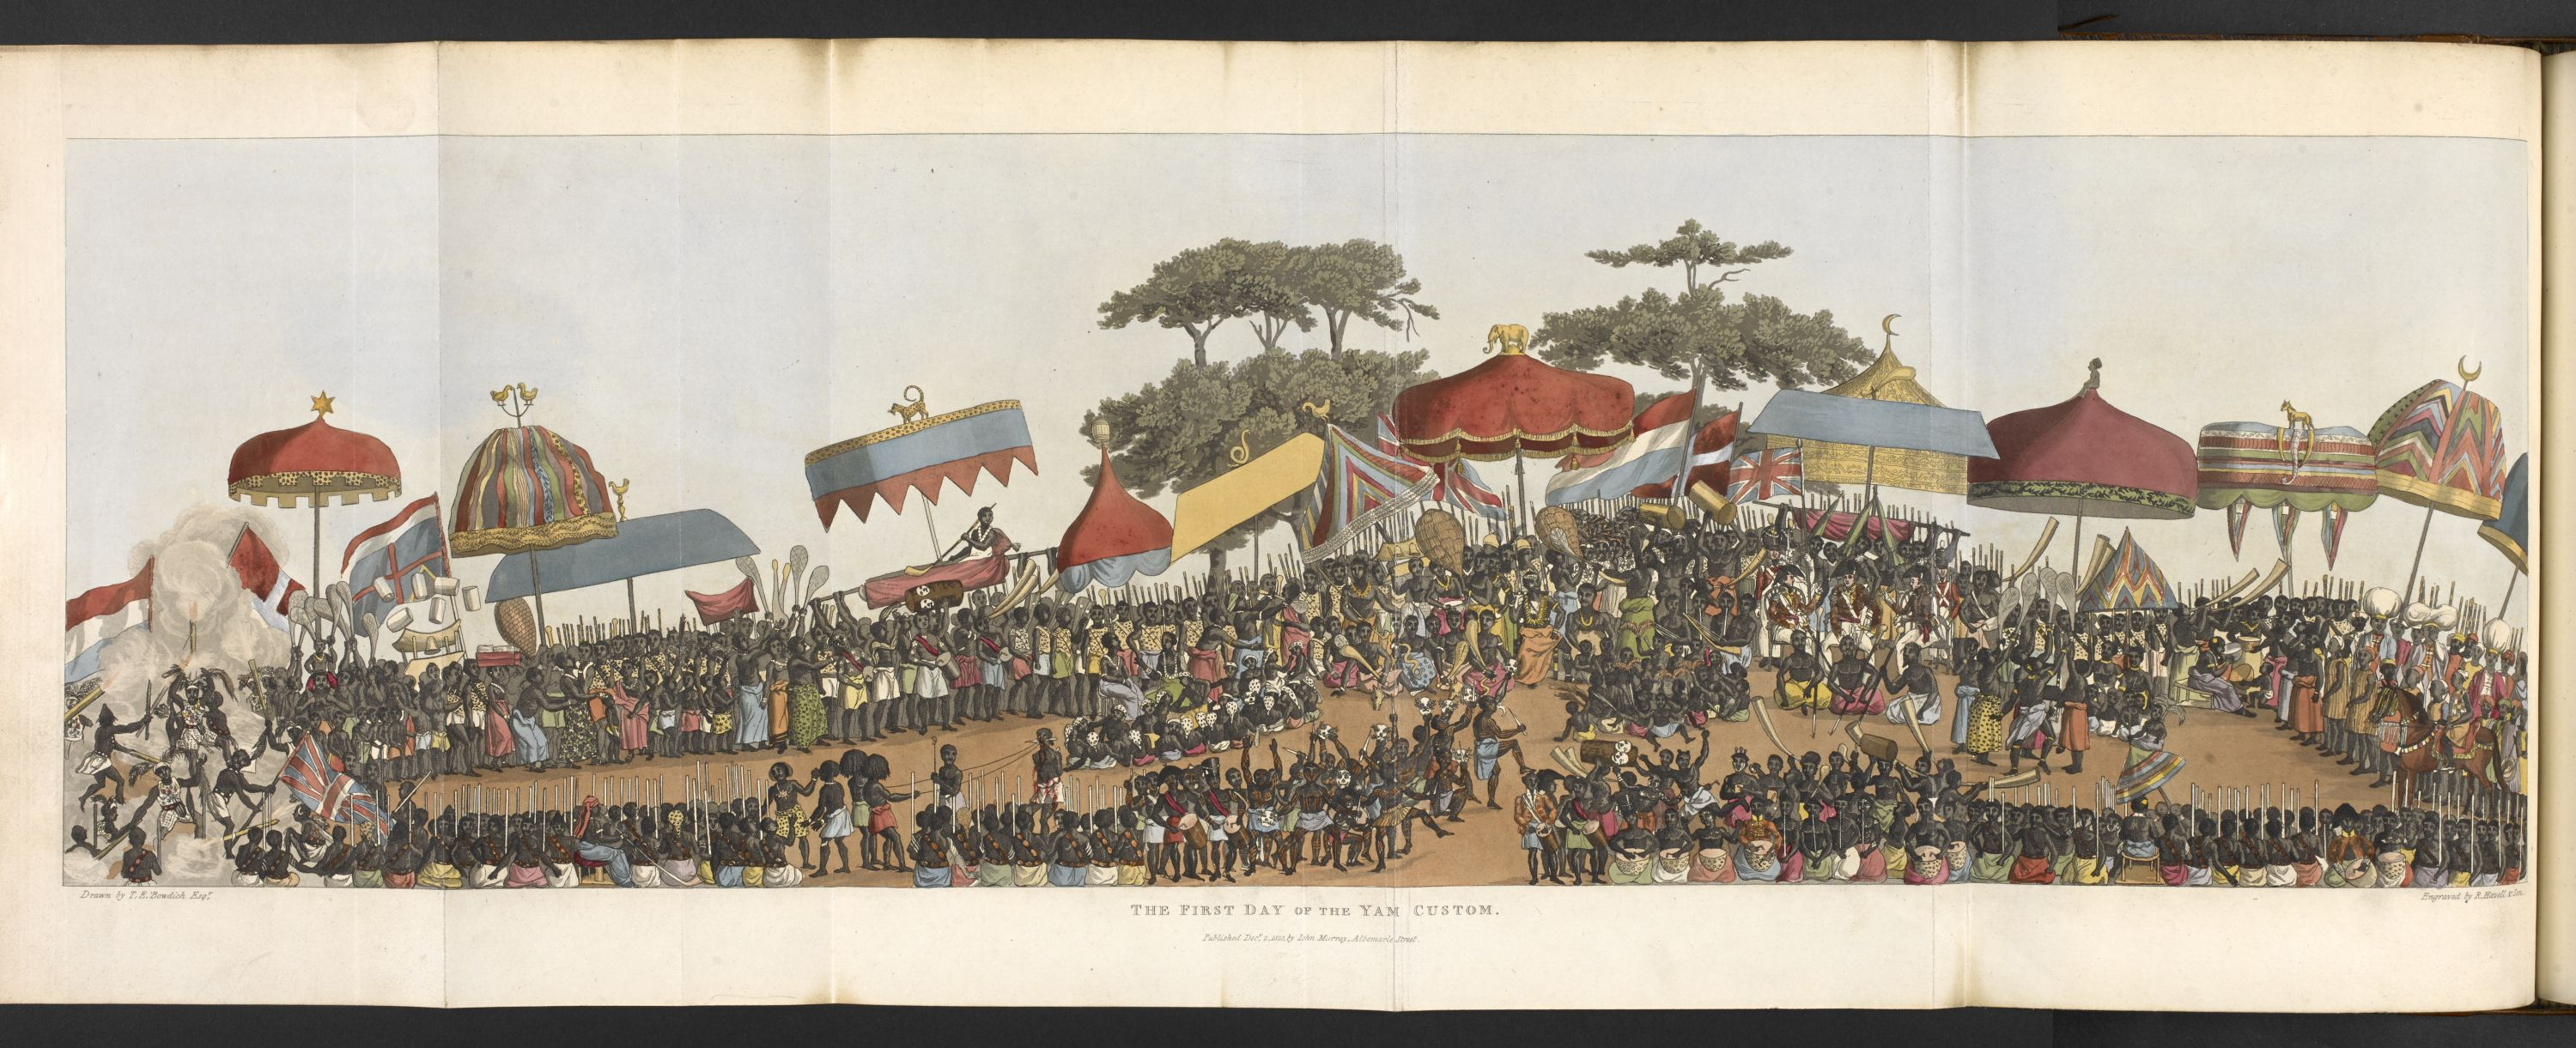 Illustration of the 'first day of the yam festival' in Thomas Edward Bowdich's, Mission from Cape Coast Castle to Ashantee (1819) going on display in West Africa: Word, Symbol, Song. Photograph courtesy of the British Library.